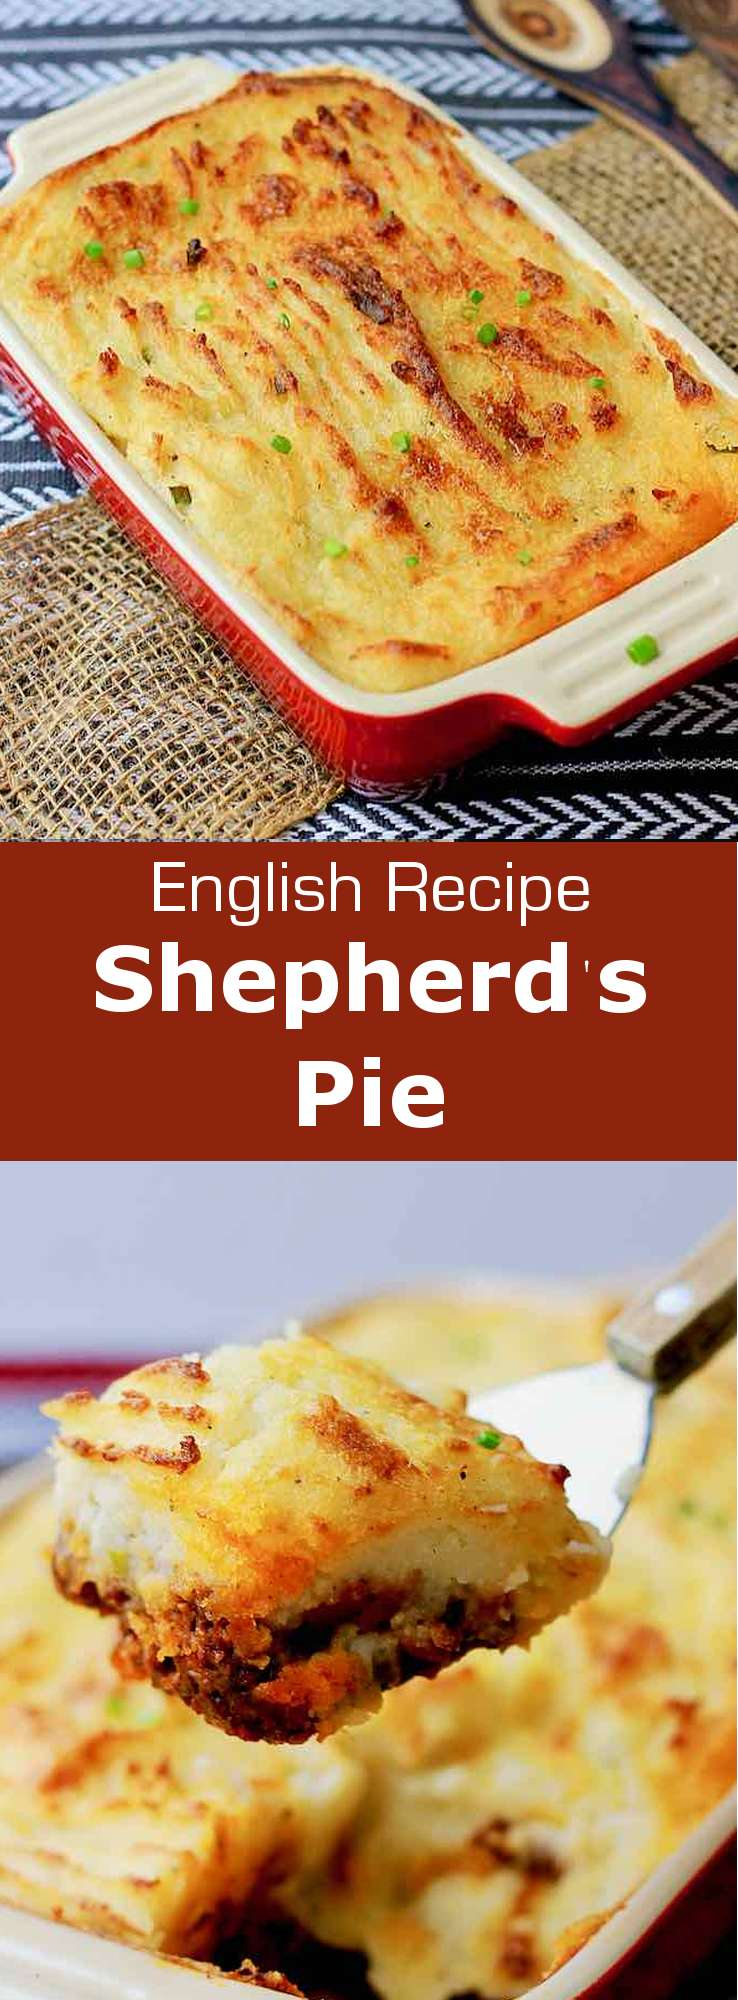 Shepherd's pie is a traditional British dish, made from lamb or mutton and mashed potatoes that is similar to French hachis parmentier. #UnitedKingdom #EnglishCuisine #BritishCuisine #EnglishFood #BritishFood #EnglishRecipe #BritishRecipe #WorldCuisine #196flavors